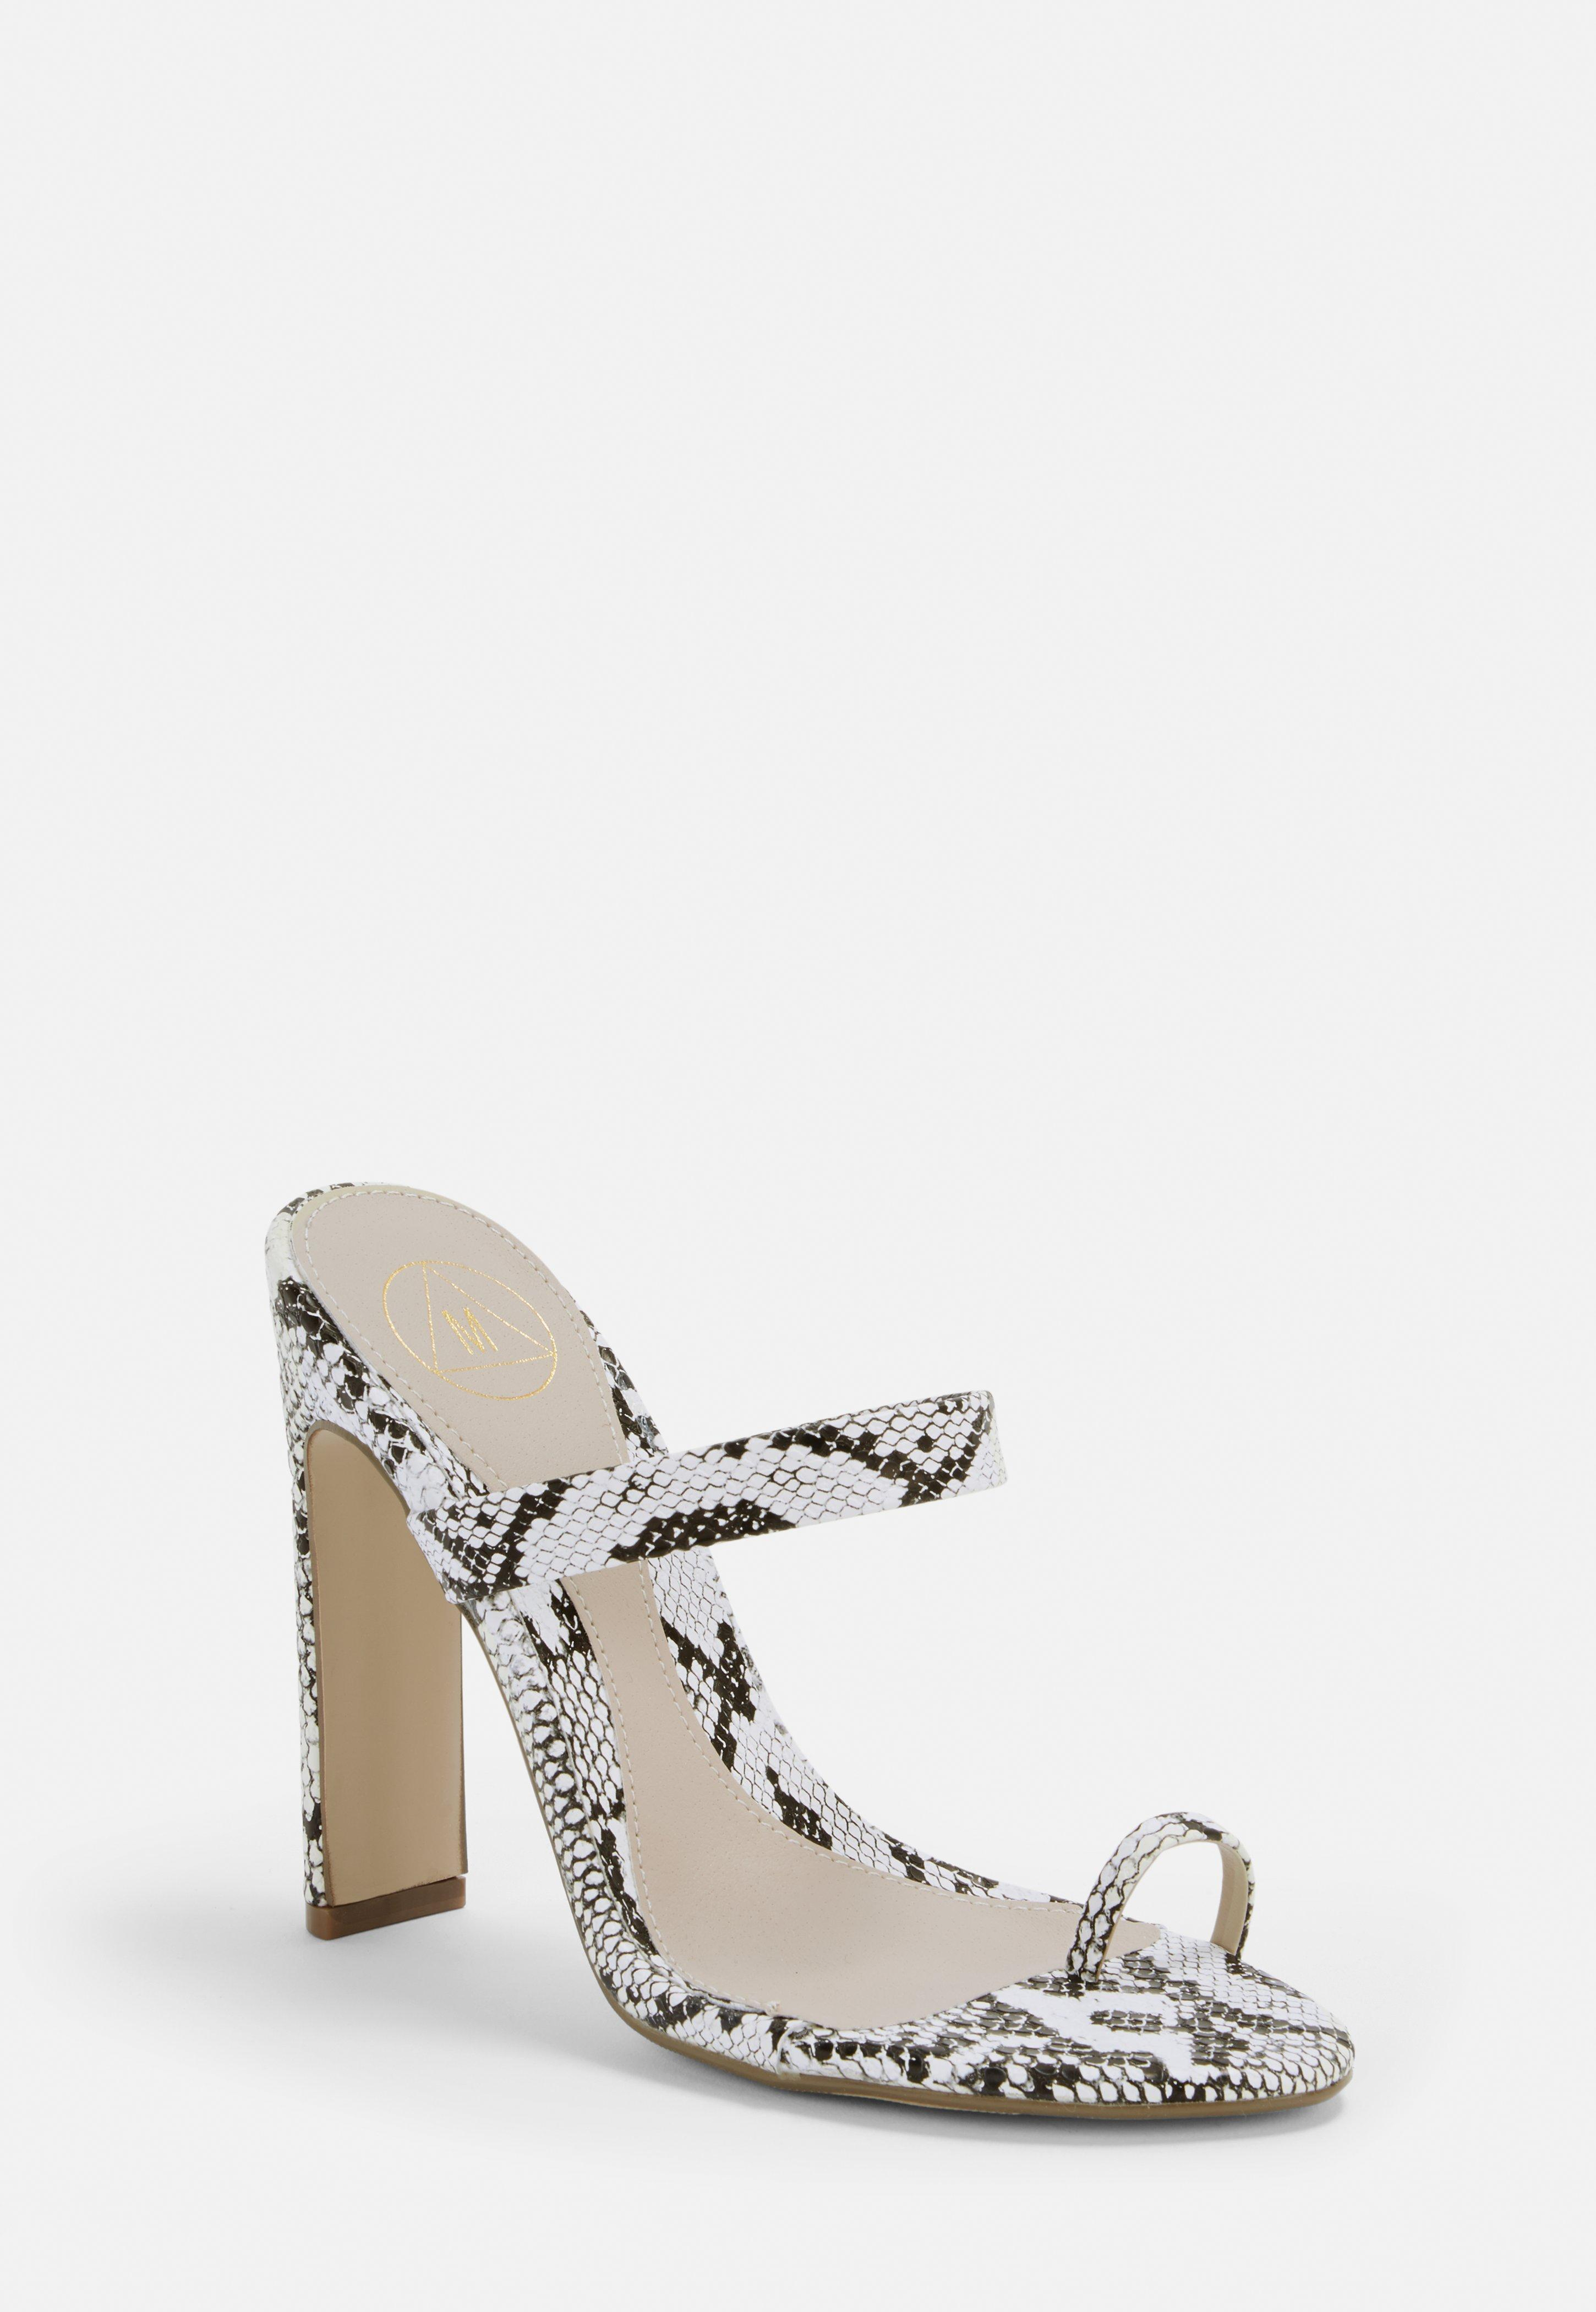 6522cdb823f White Snake Print Toe Post Barely There Mules